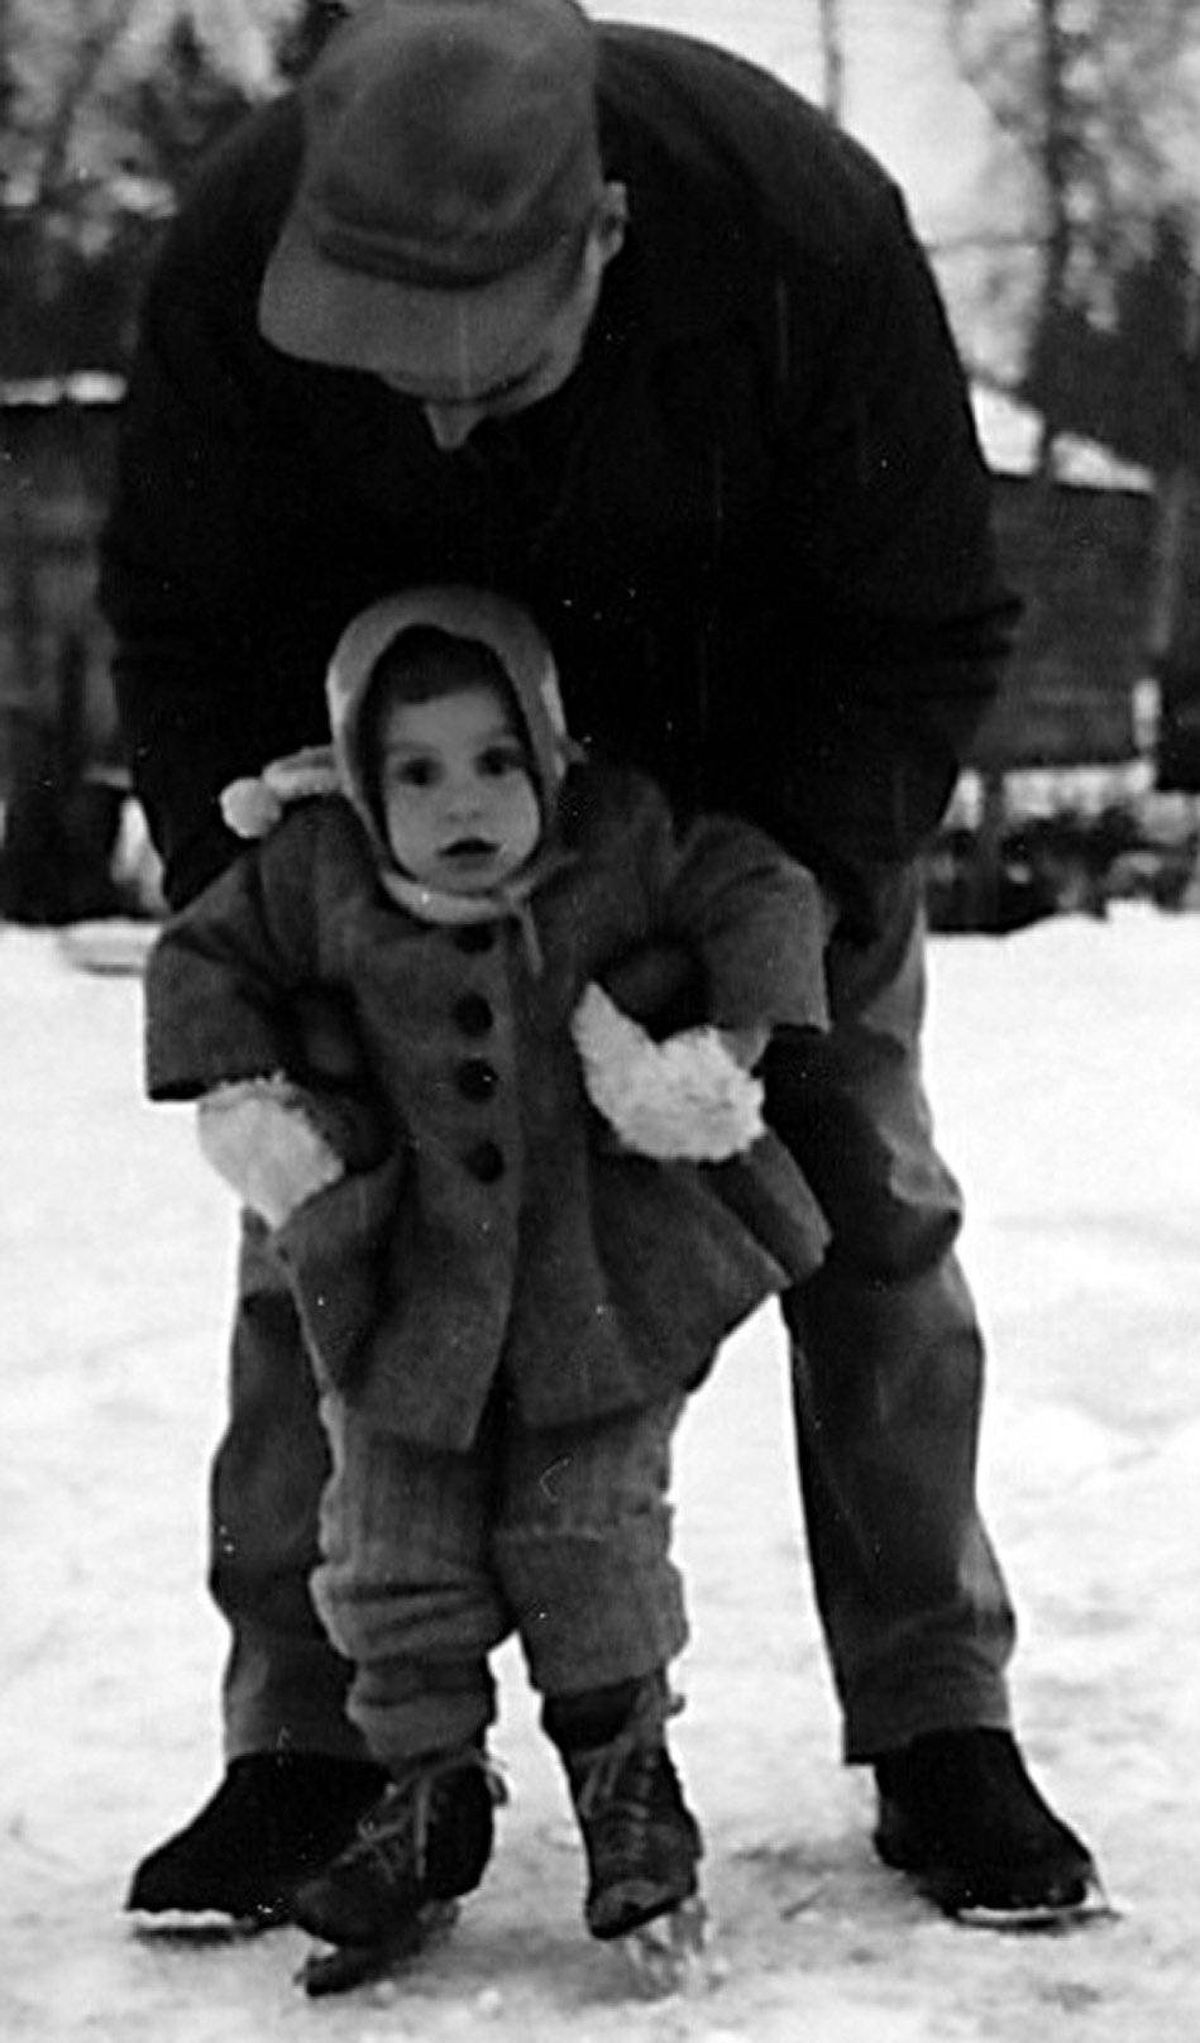 My dad has been gone many years now, but whenever I look at this photo of him teaching me to skate, it takes me back to my childhood and the man who exemplified all the best a father could be.